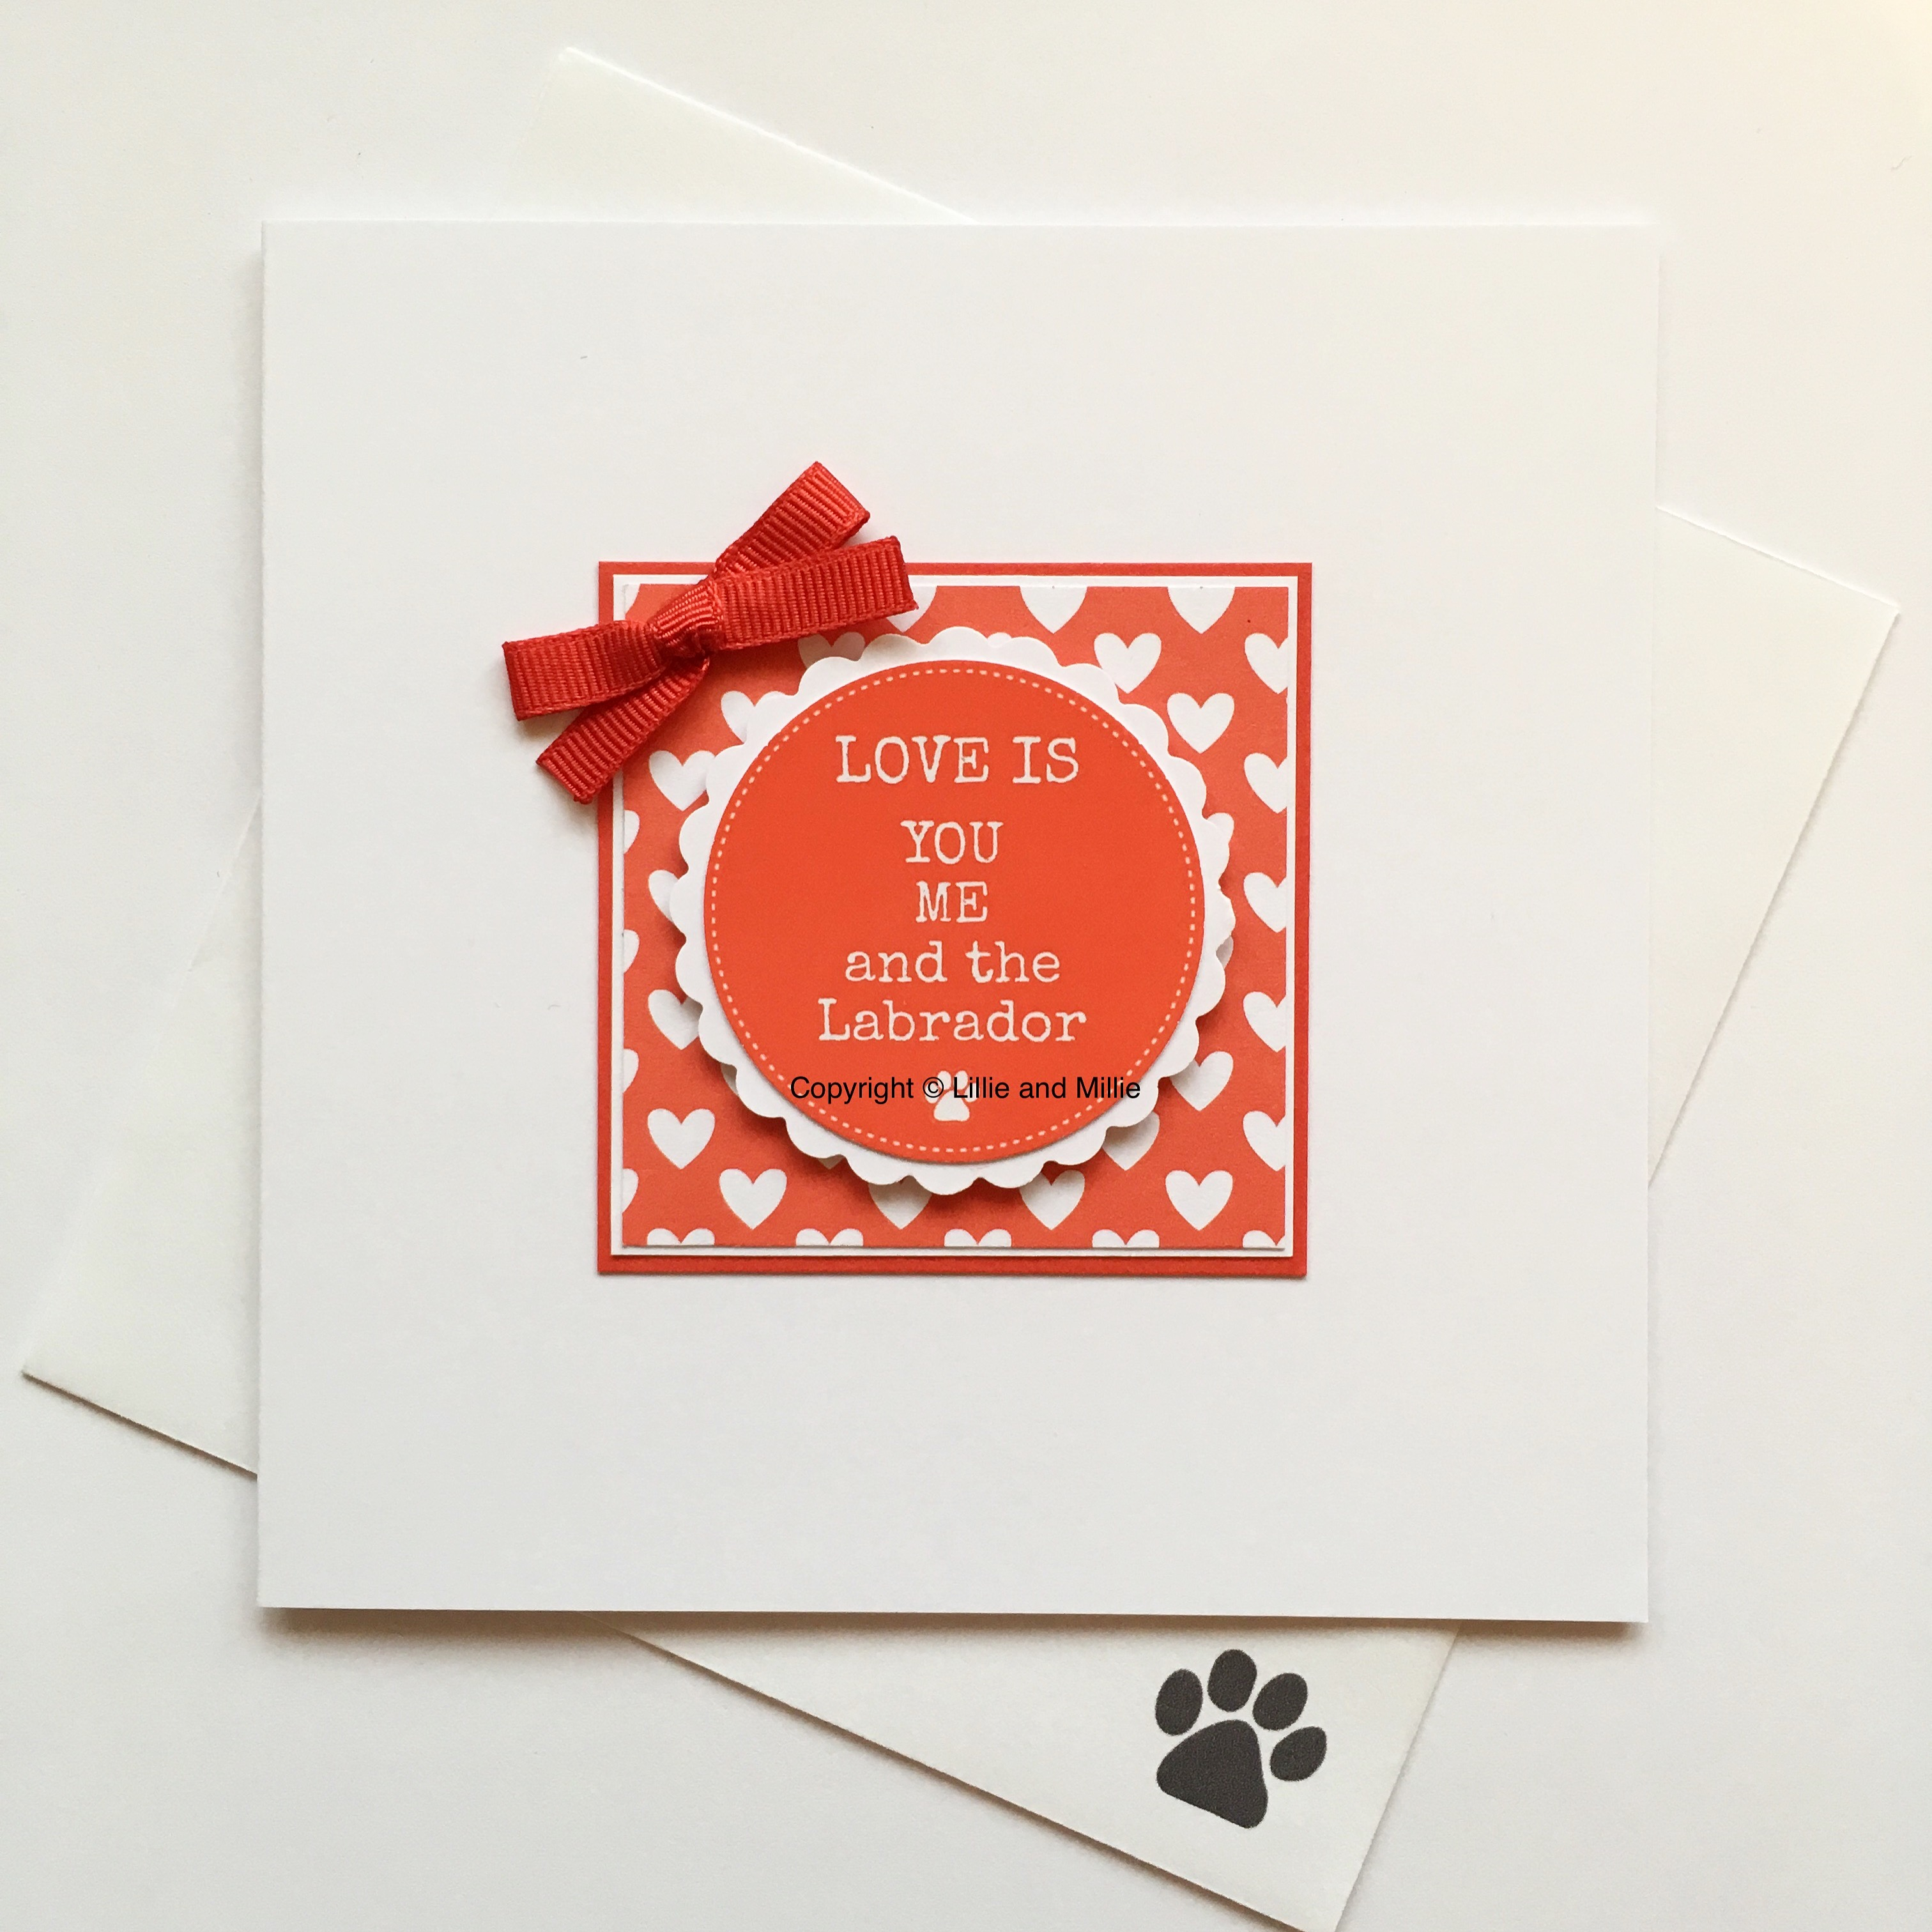 Love is You Me and the Labrador Red Card